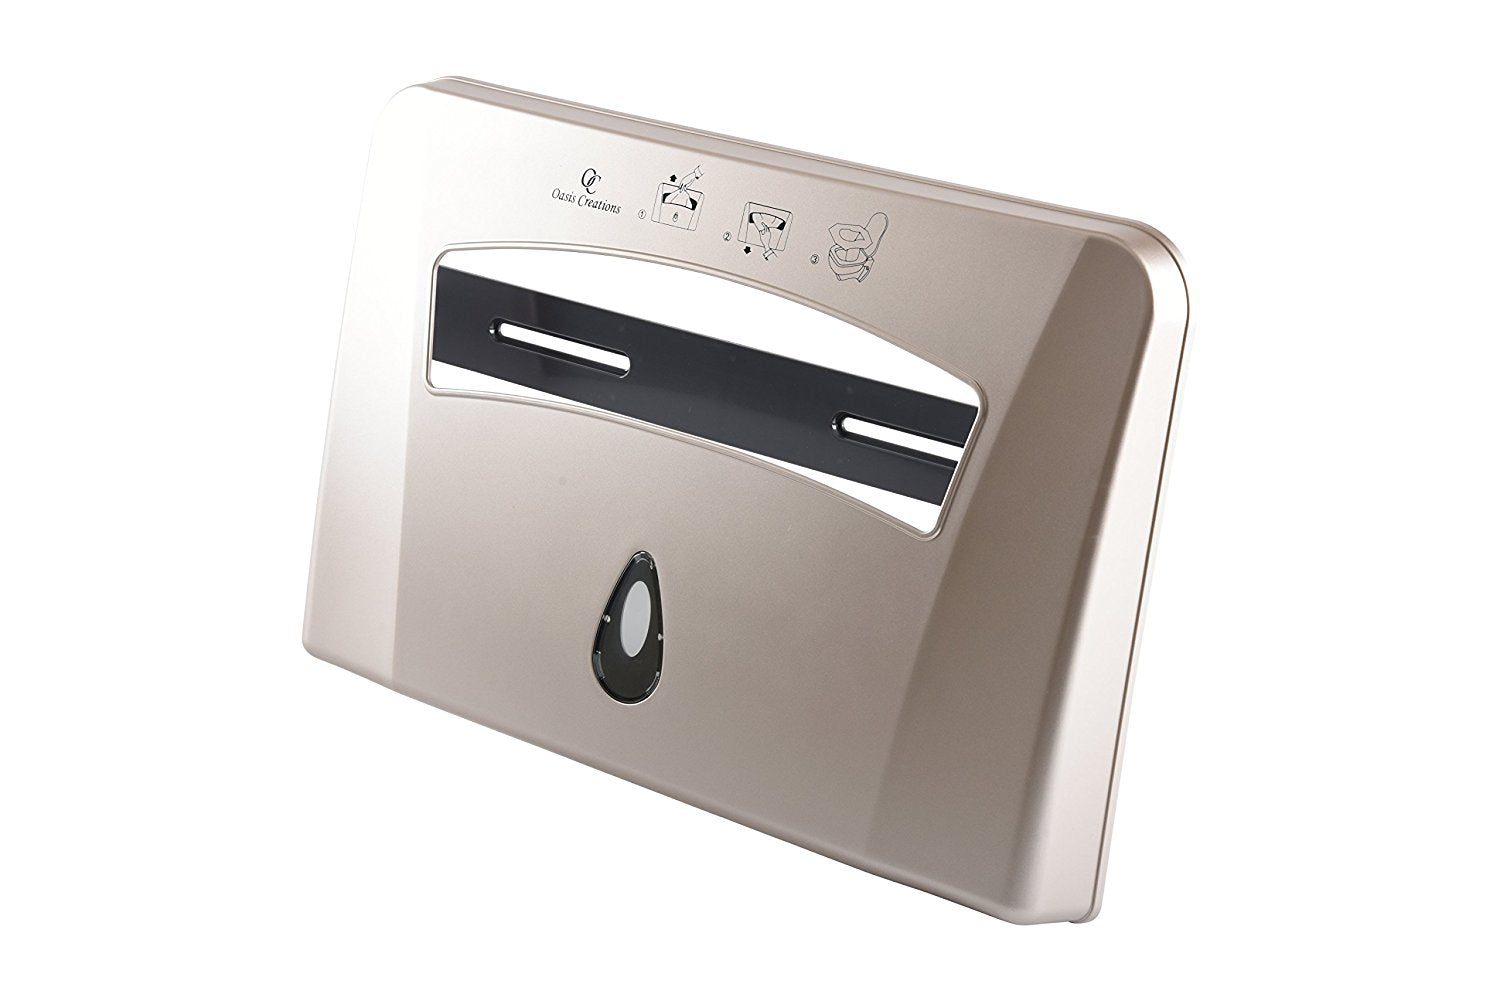 TOILET SEAT COVER DISPENSER - BY OASIS CREATIONS  COMMERCIAL / RESIDENTIAL